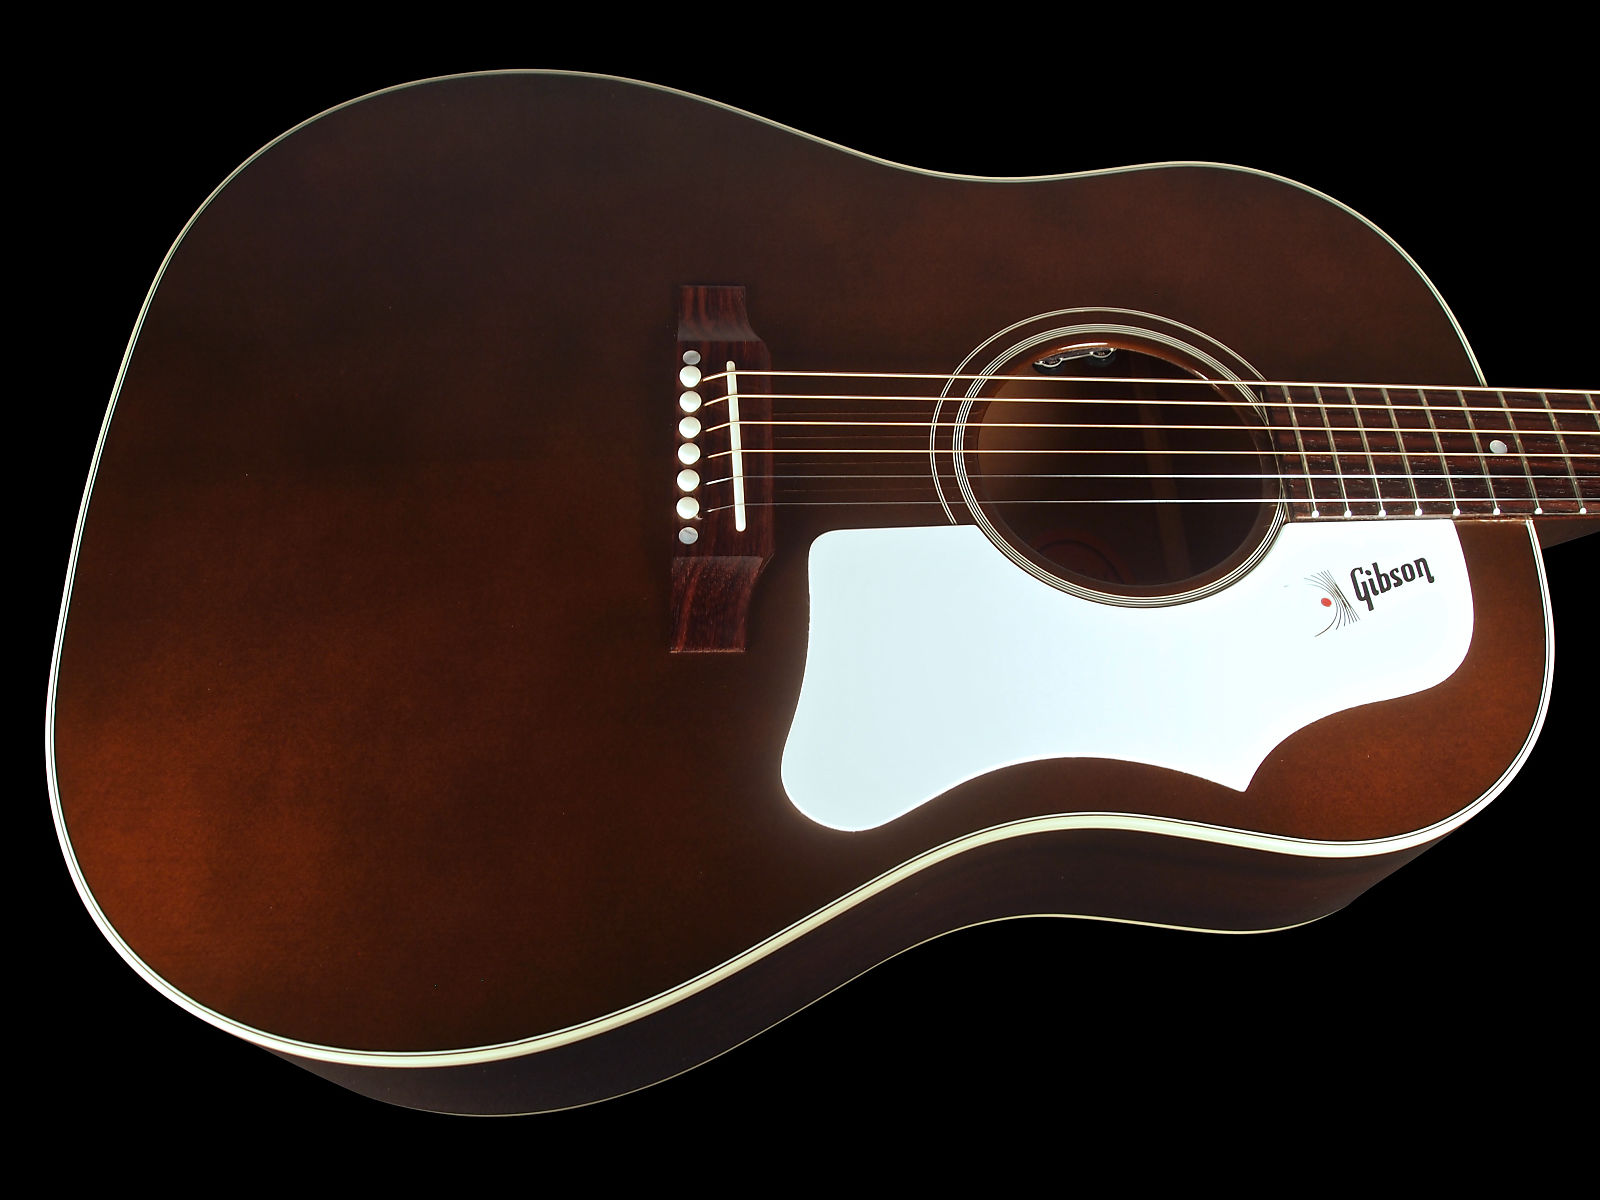 2017 gibson j 45 standard with lr baggs element pickup trans brown with white pick guard. Black Bedroom Furniture Sets. Home Design Ideas